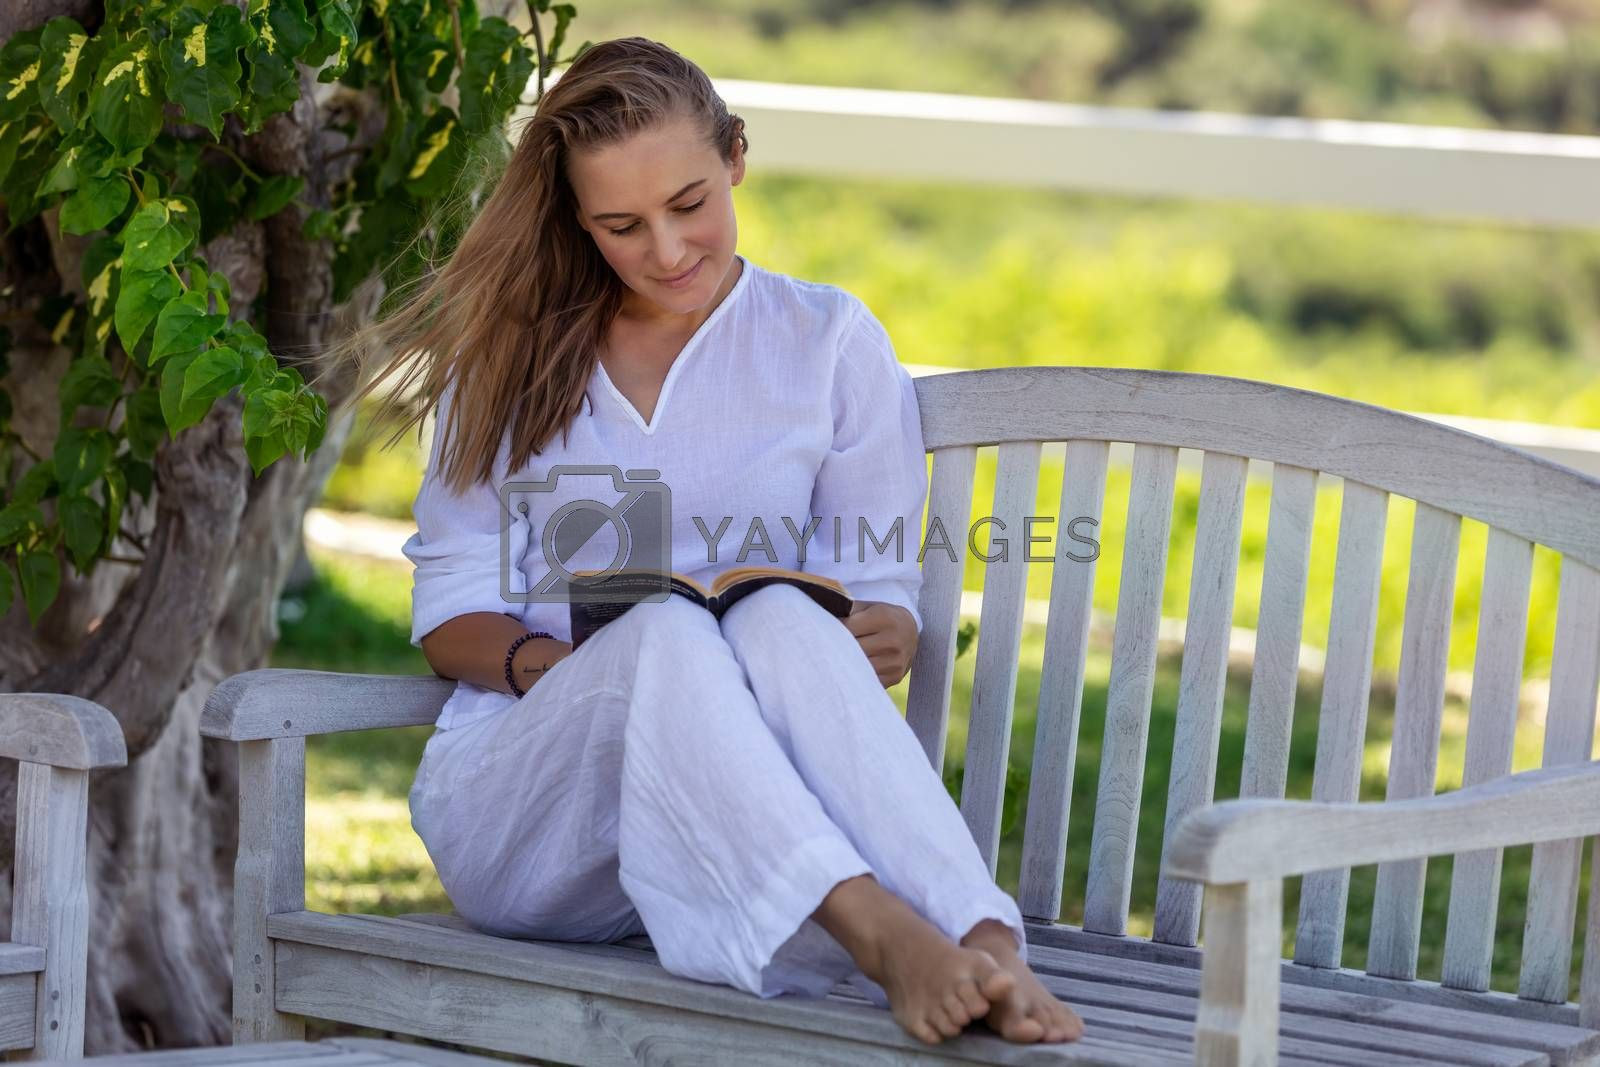 Beautiful Young Woman Sitting on the Bench in the Park and Reading Book. Spending Nice Summer Day with Good Story. Peace and Relaxation Concept.